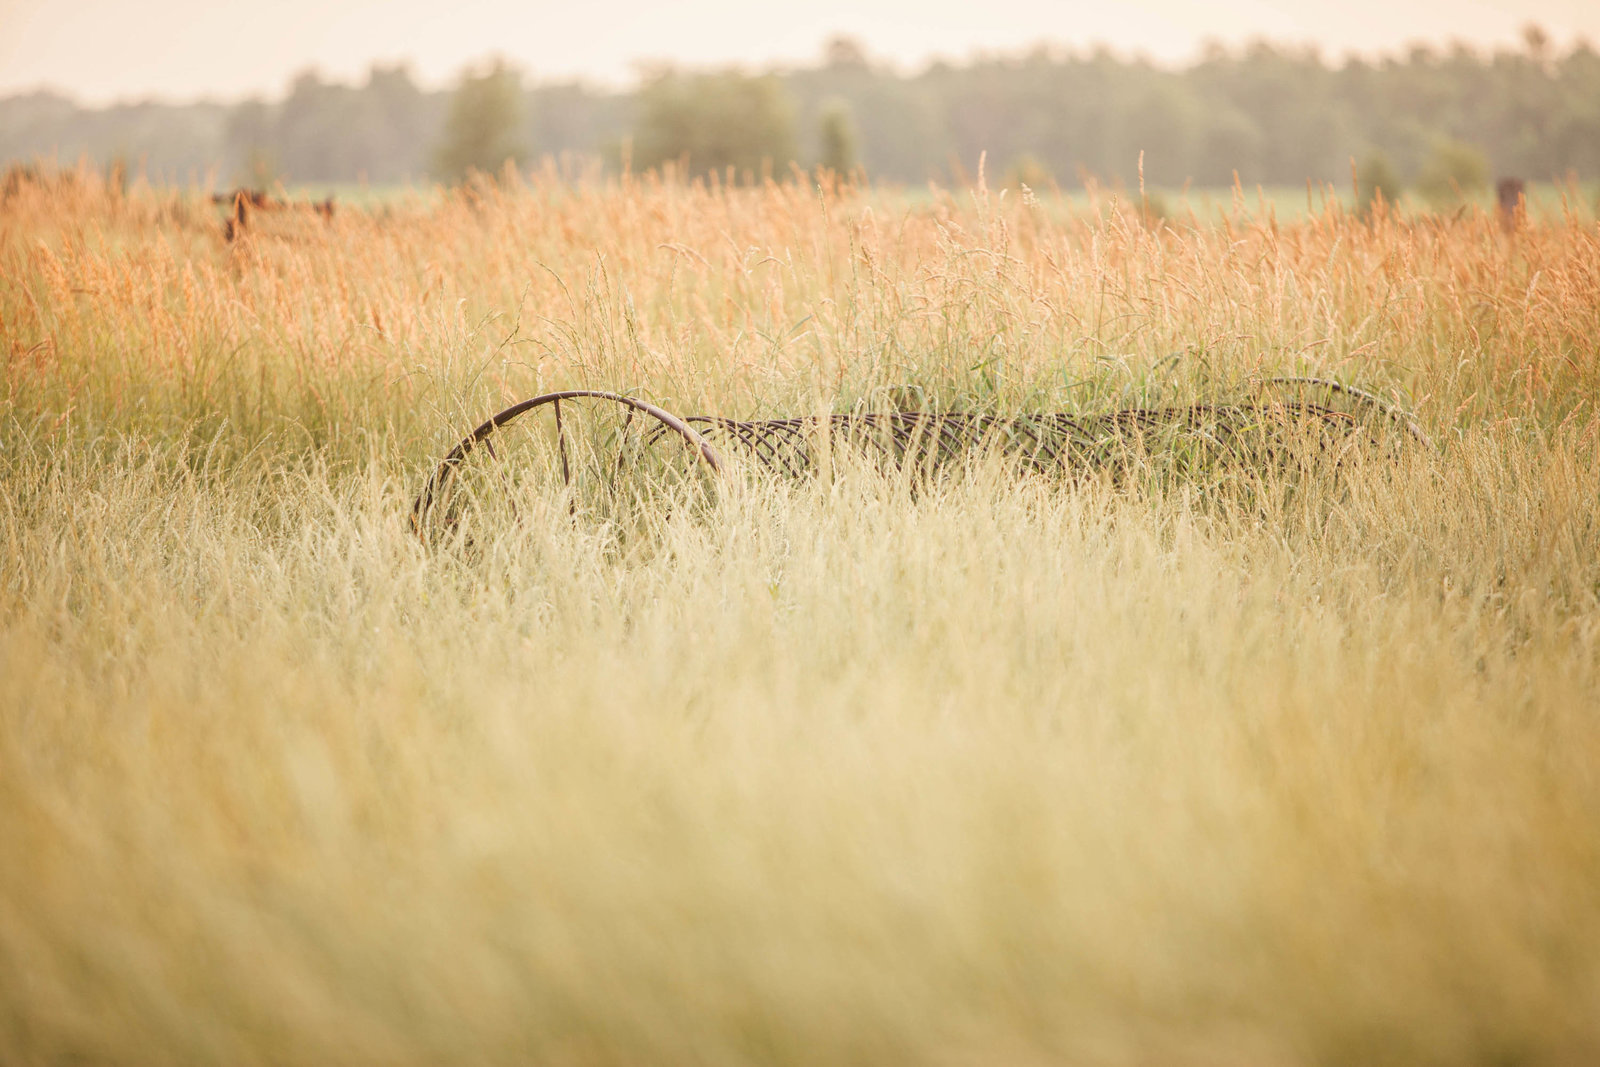 grass-sunrise-wisconsin-farm-country-nature-kate-timbers-photography-2236